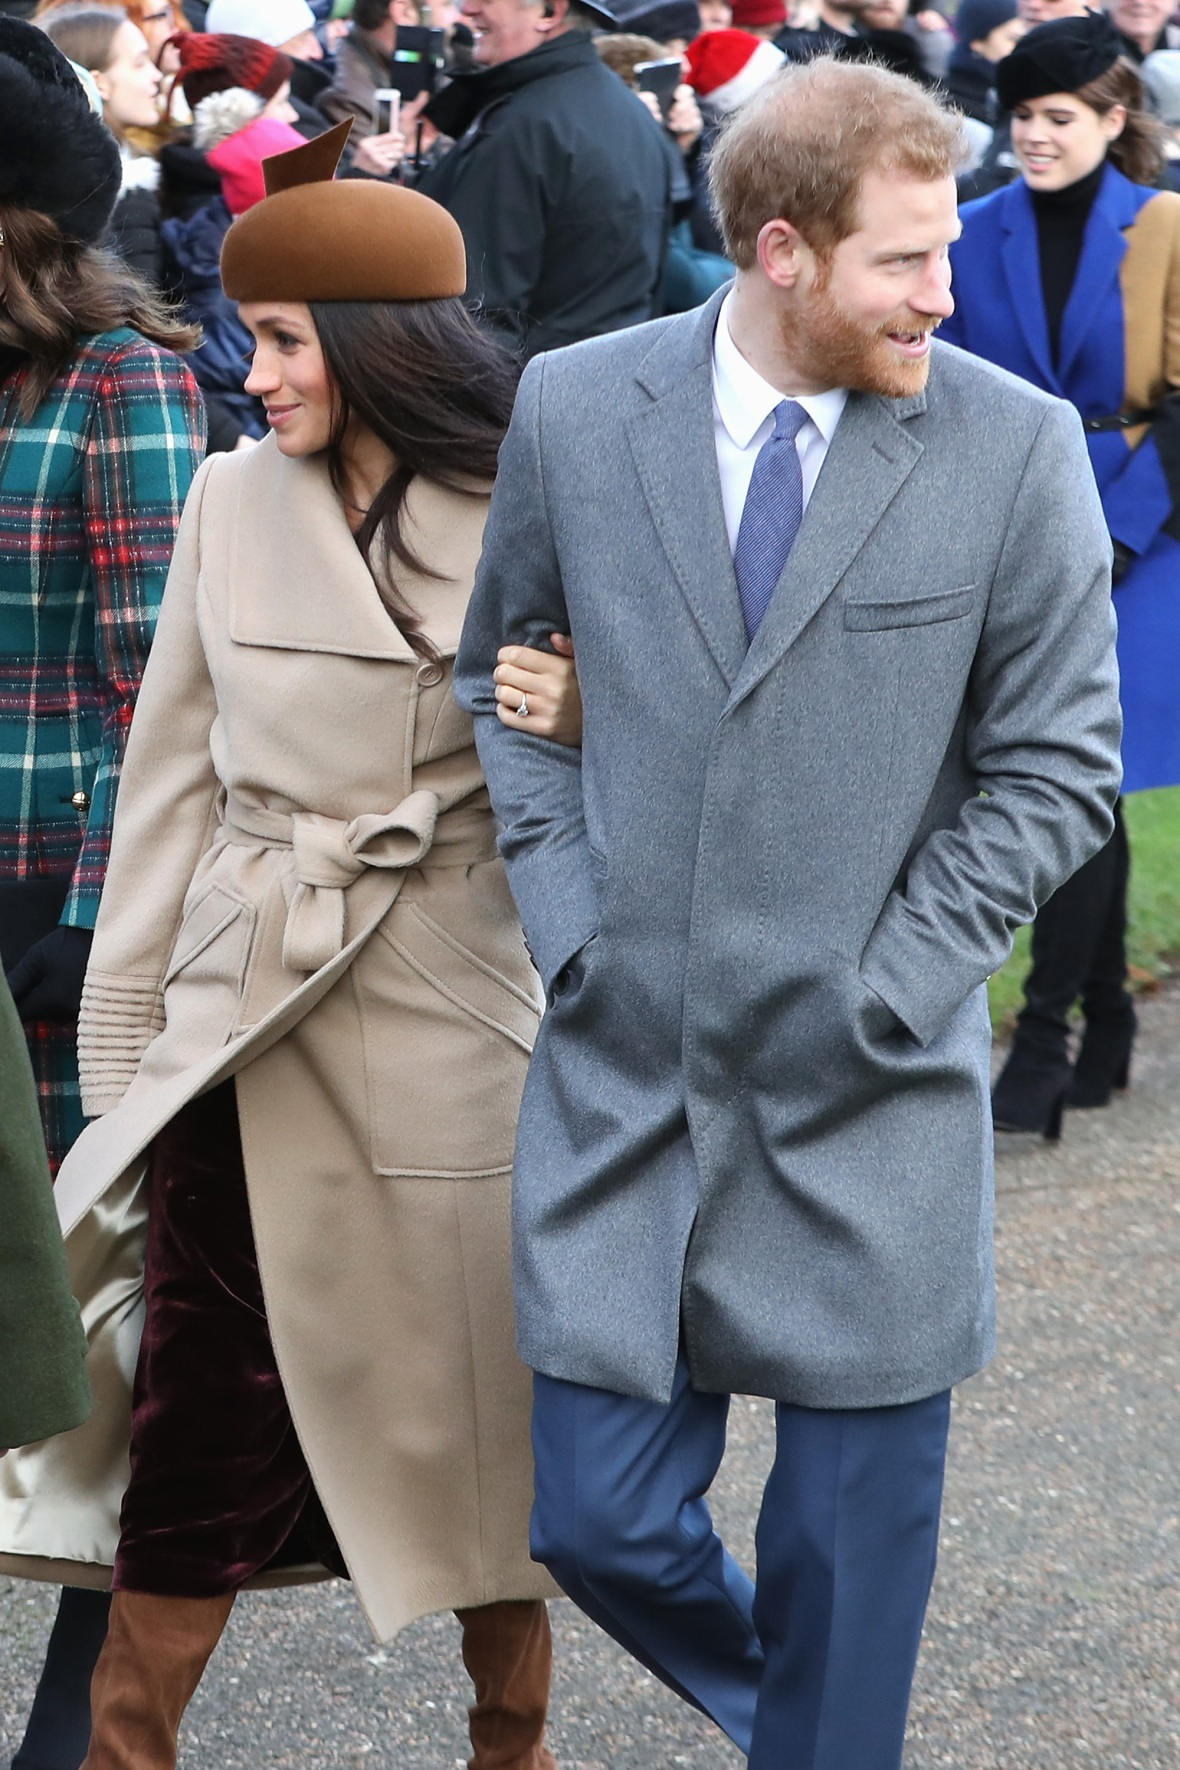 meghan markle christmas dress getty images